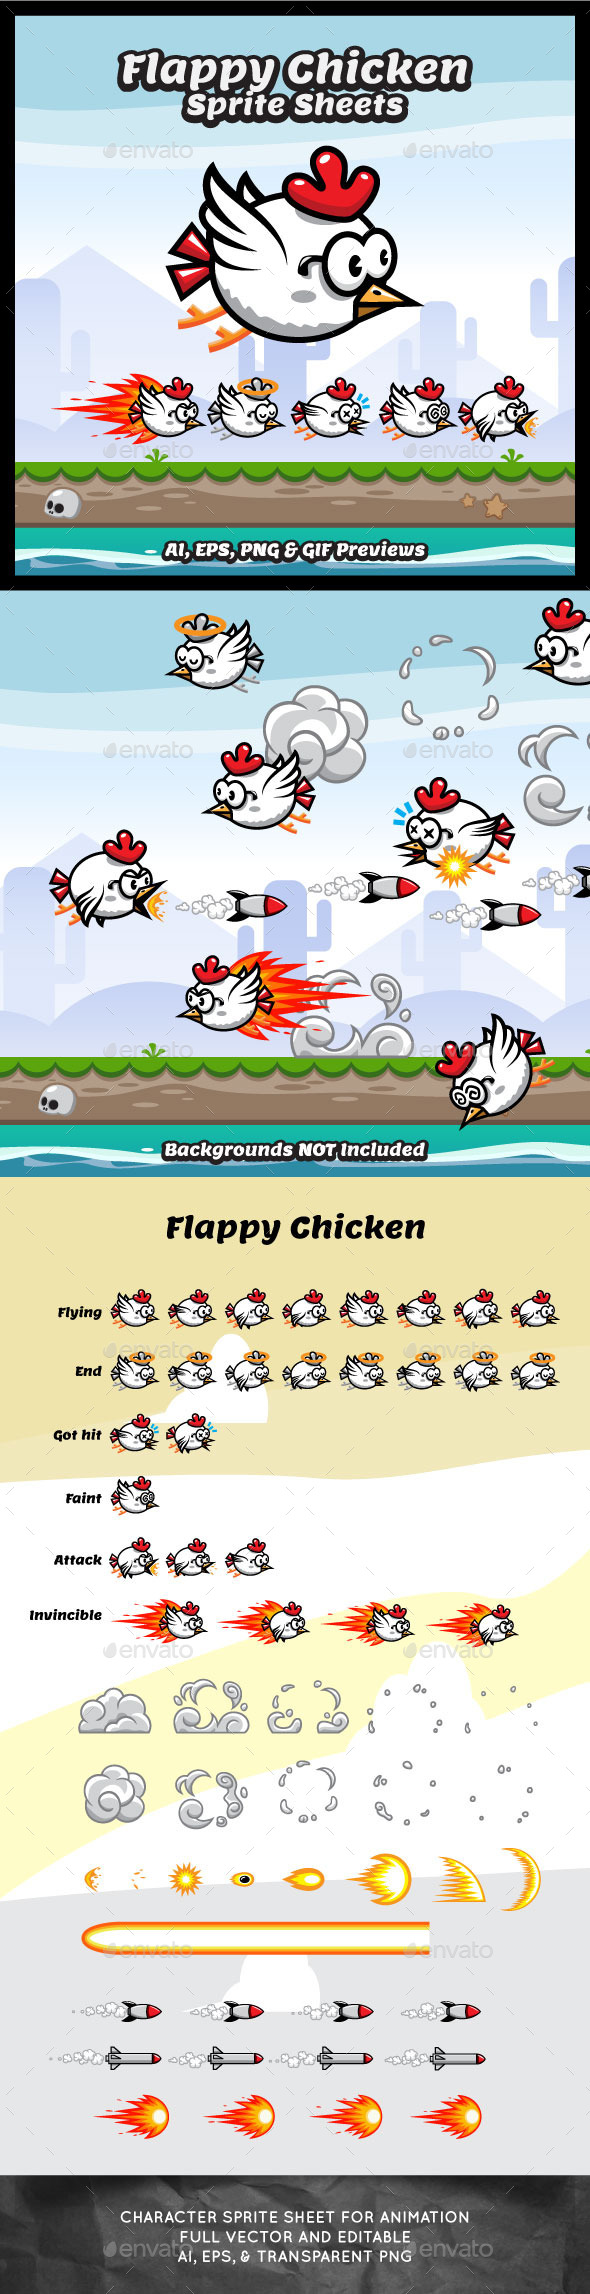 GraphicRiver Game Sprite Sheets Flappy Chicken 10296446